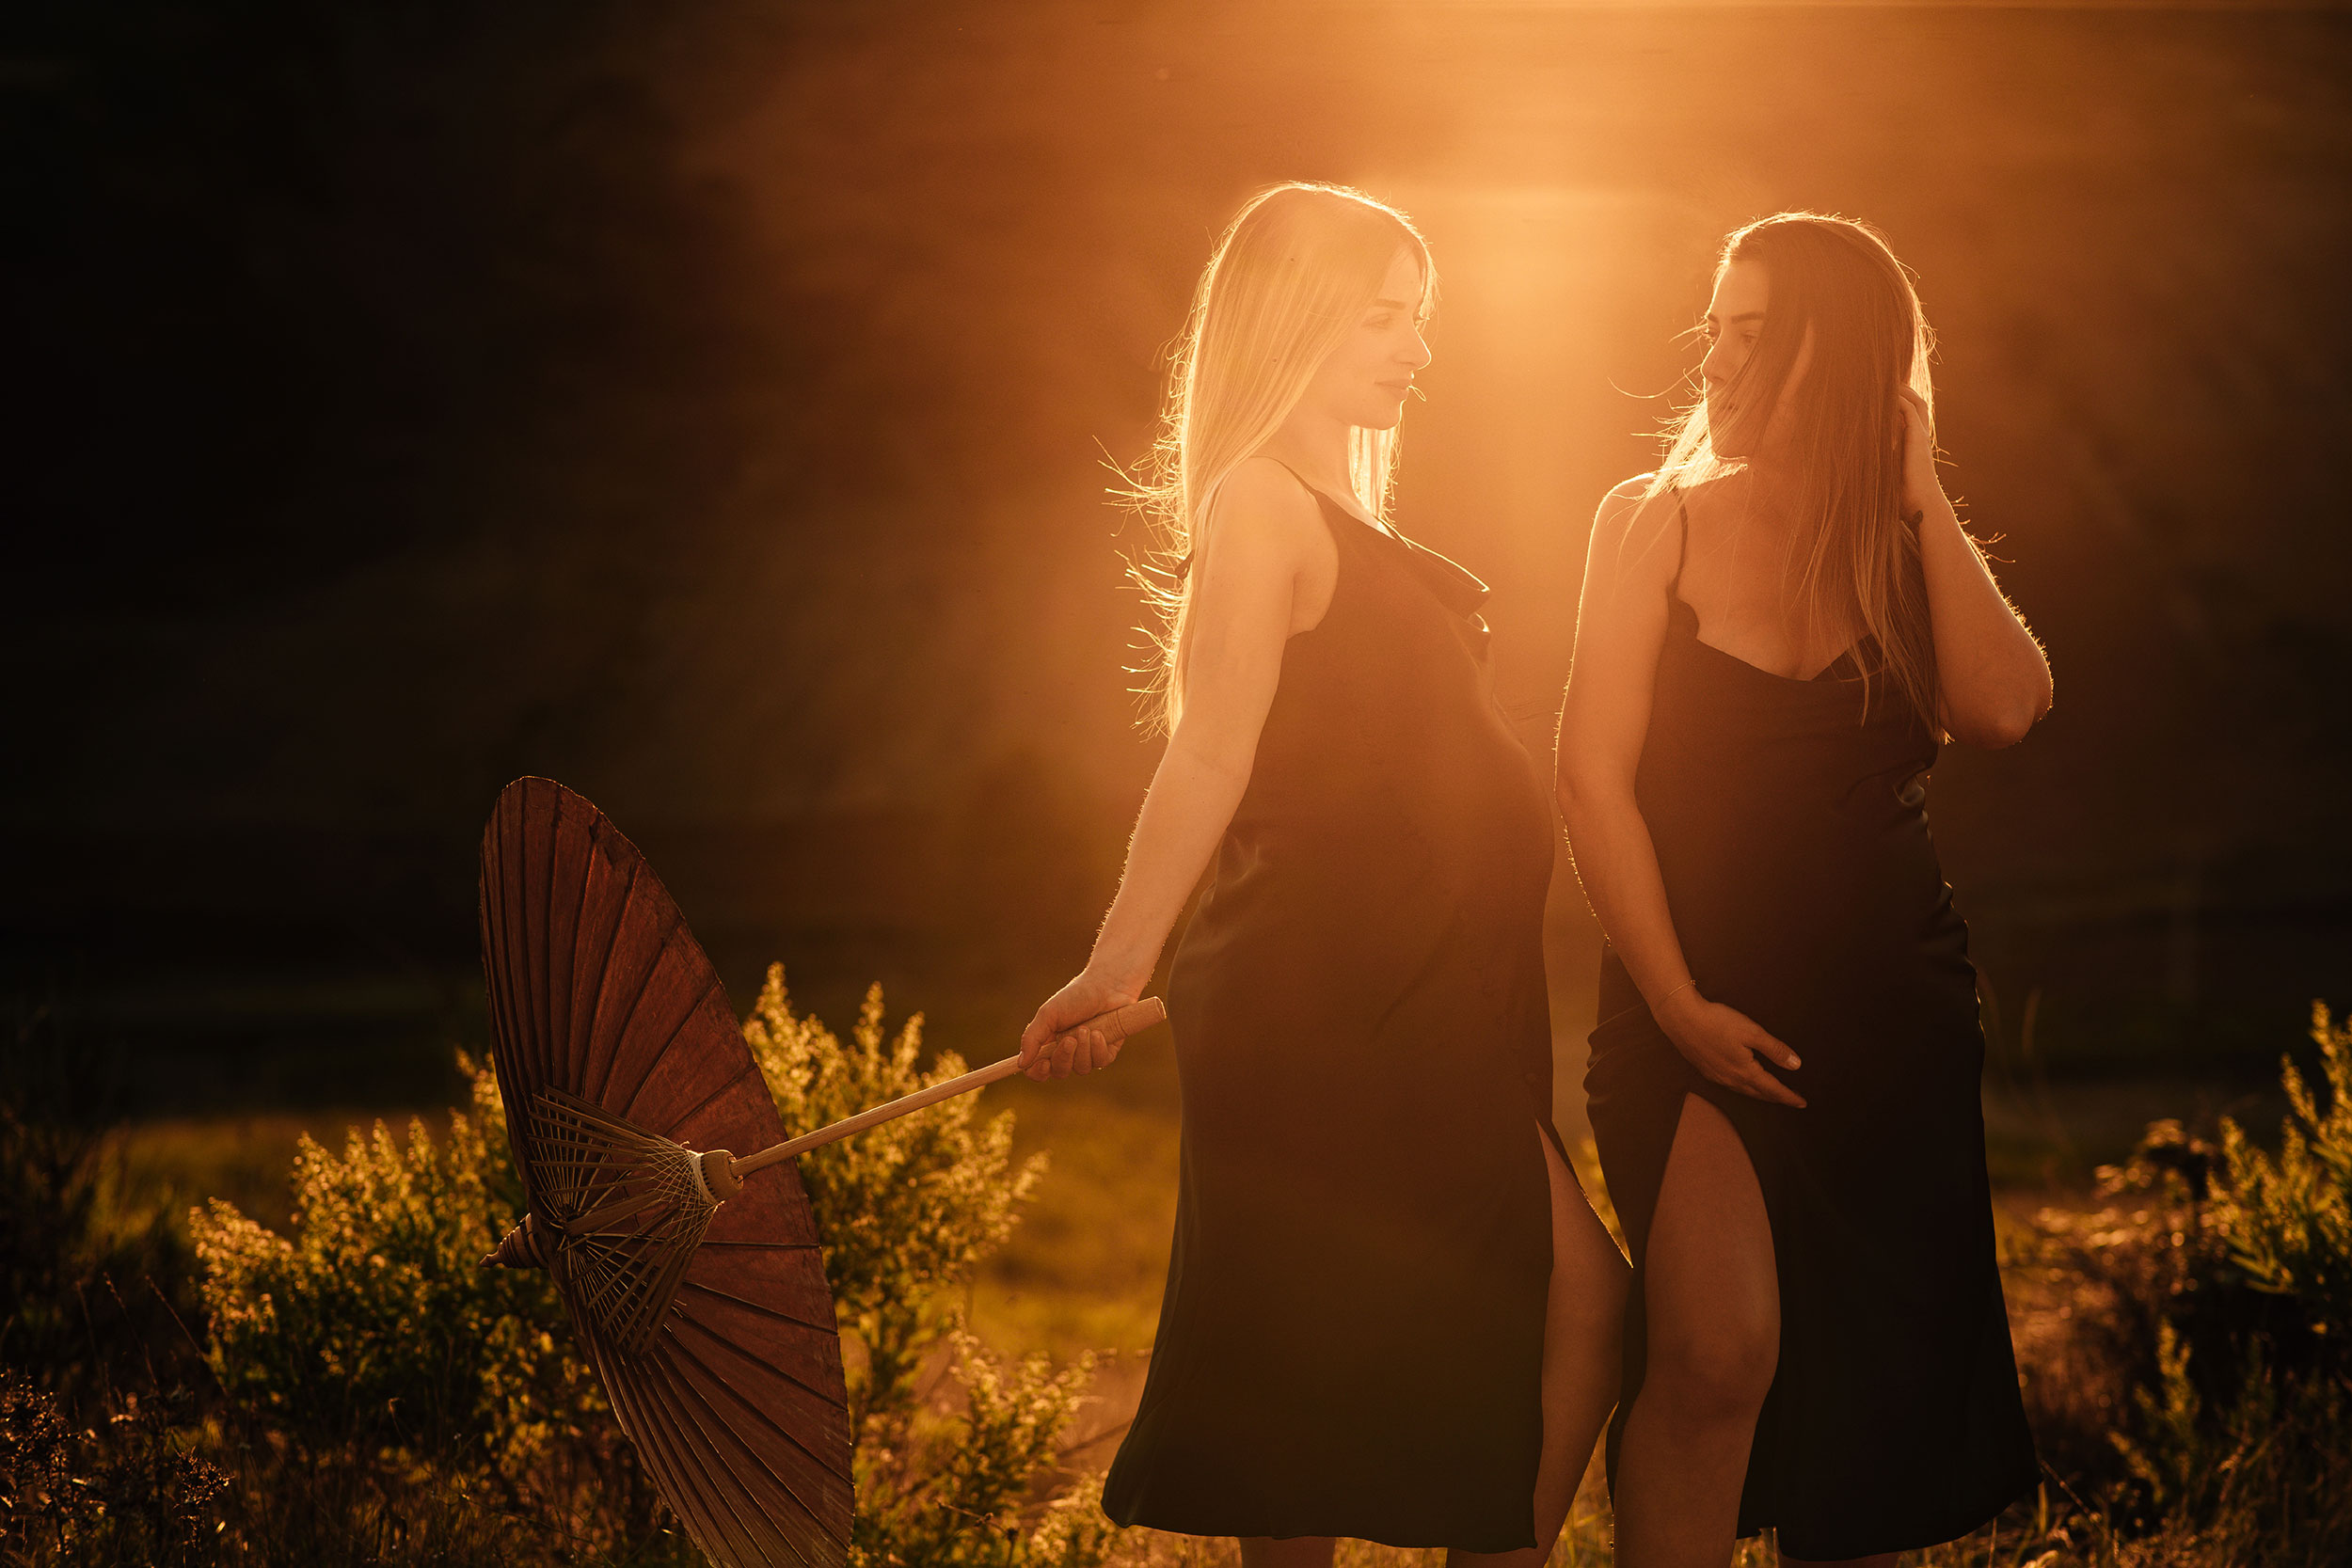 Golden hour maternity photoshoot with Sara Hoxha and her cousin